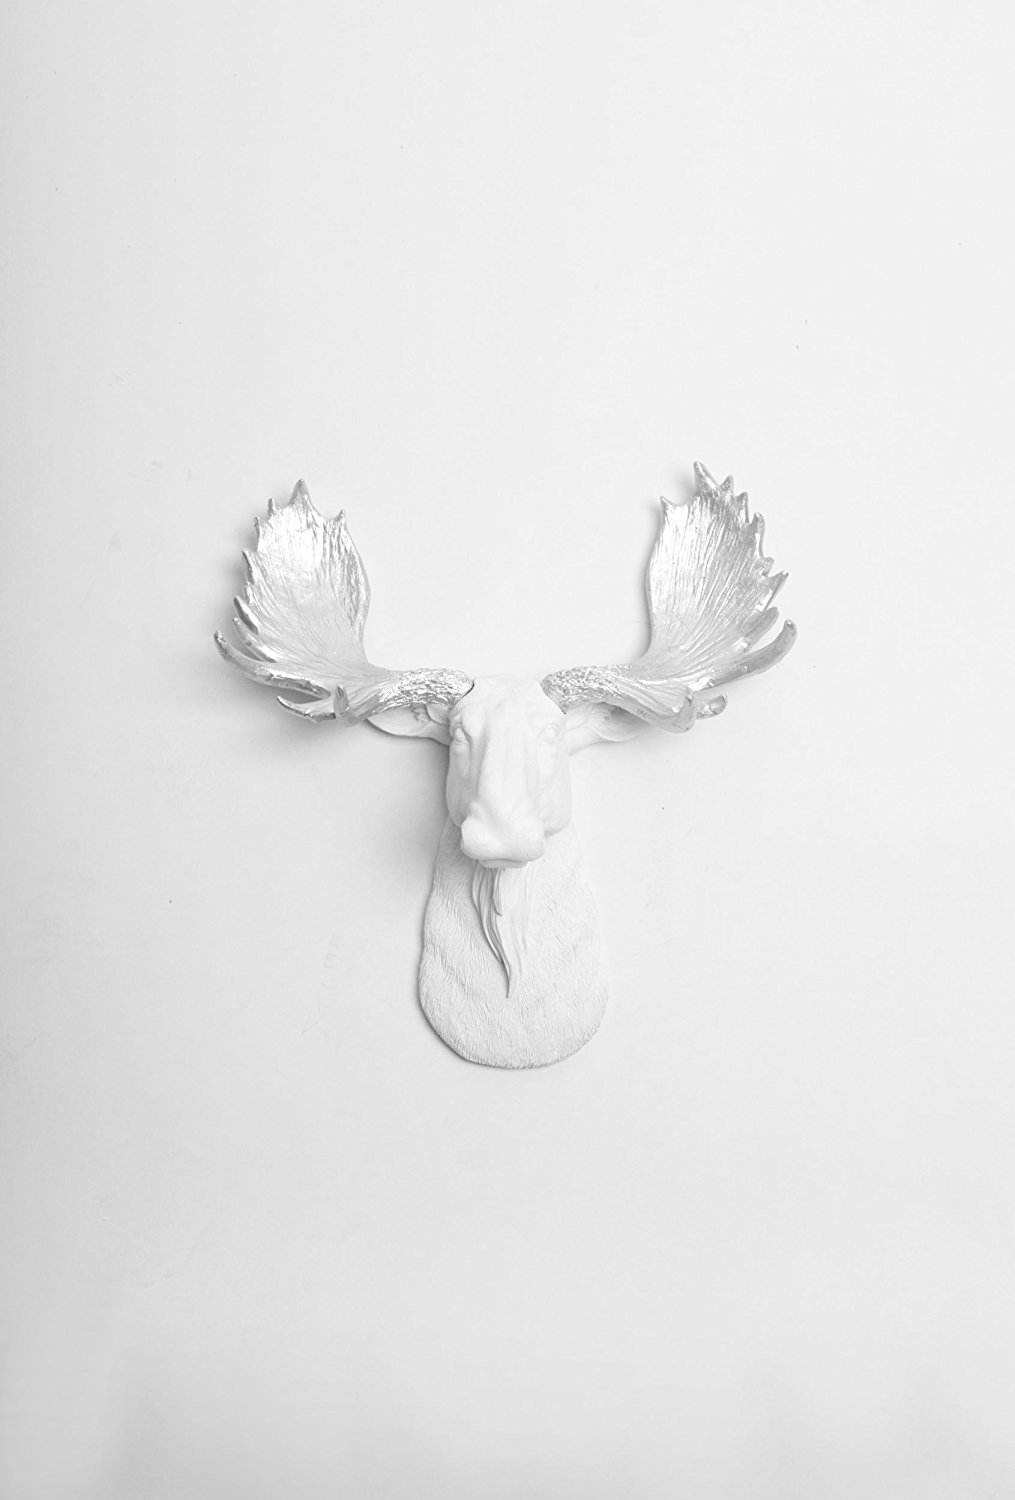 The Mini Adobe | Miniature White Resin Moose Head with Silver Antlers | White Moose Head Wall Decor | Moose Head Wall Mount by White Faux Taxidermy | Animal Head Wall Sculpture